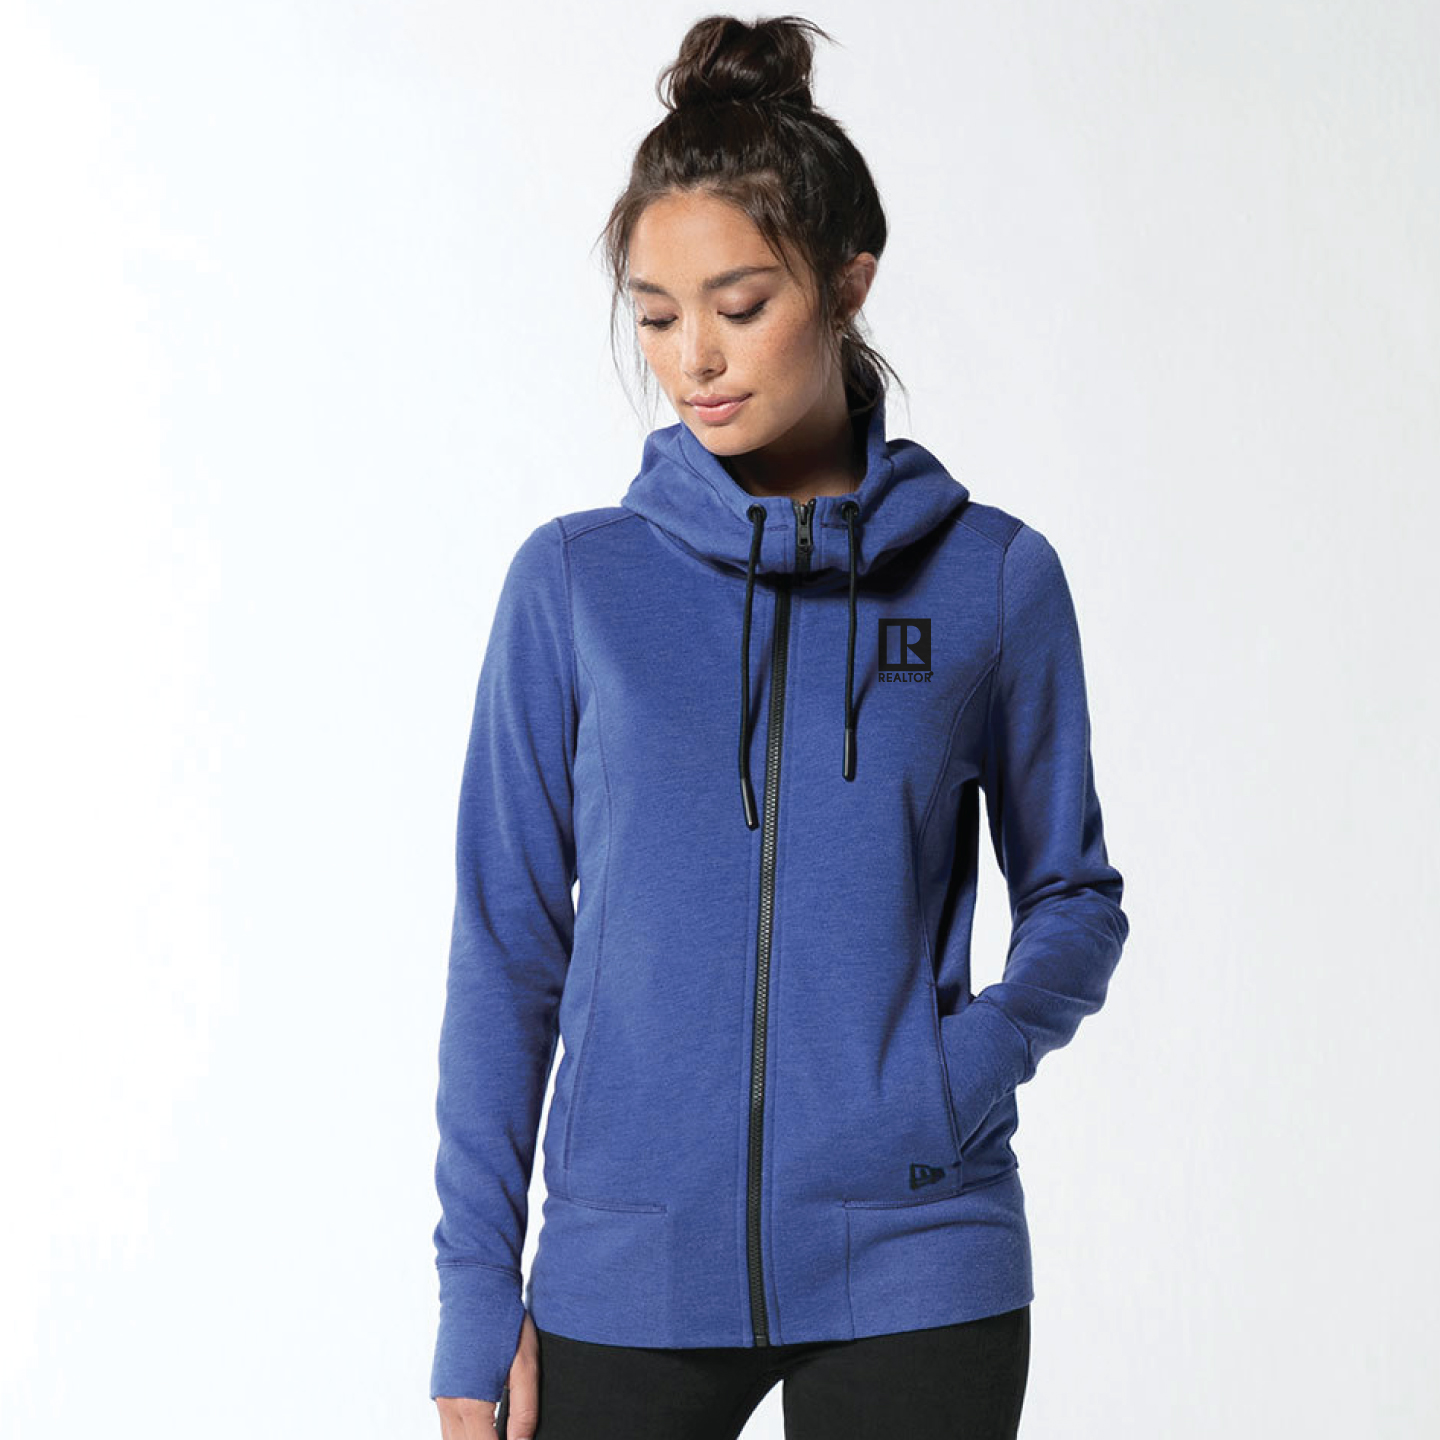 New Era Ladies Tri-Blend Cowl Neck Fleece Full-Zip Hoodie hoodies, zip, ladies, news, eras, fleeces, jackets